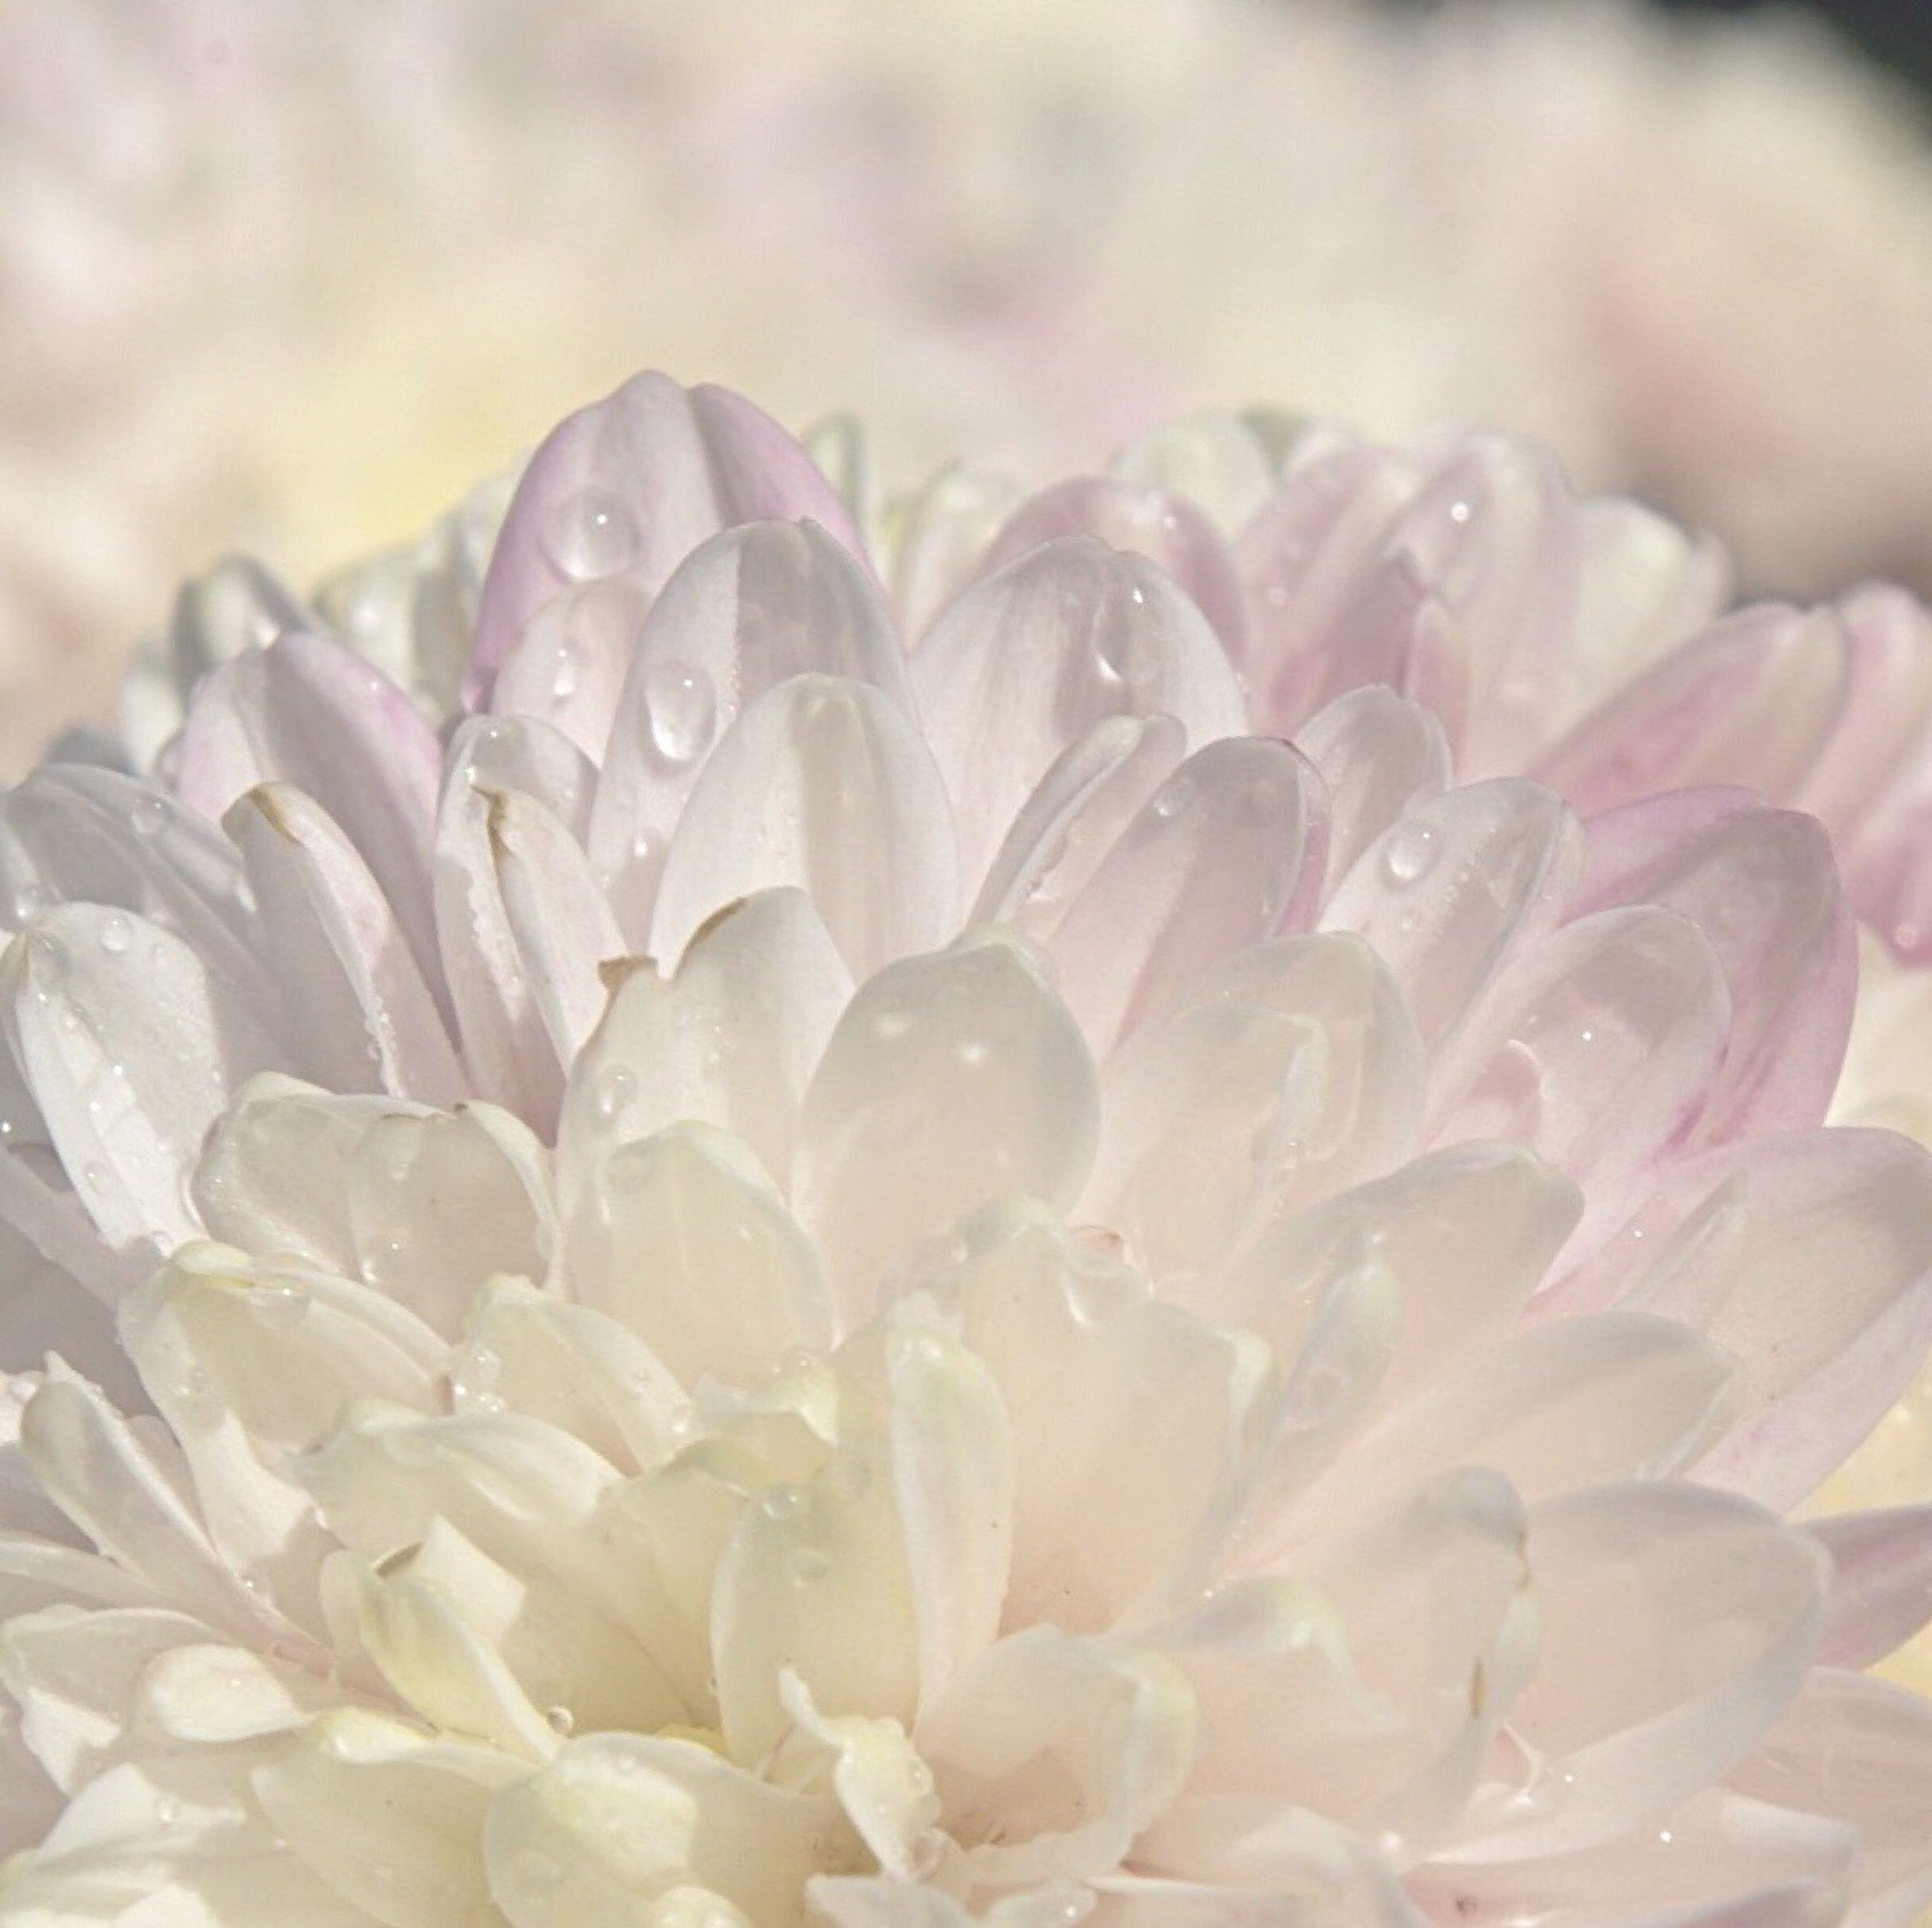 flower, petal, freshness, fragility, flower head, close-up, beauty in nature, nature, growth, single flower, blooming, focus on foreground, pink color, macro, selective focus, white color, full frame, plant, natural pattern, backgrounds